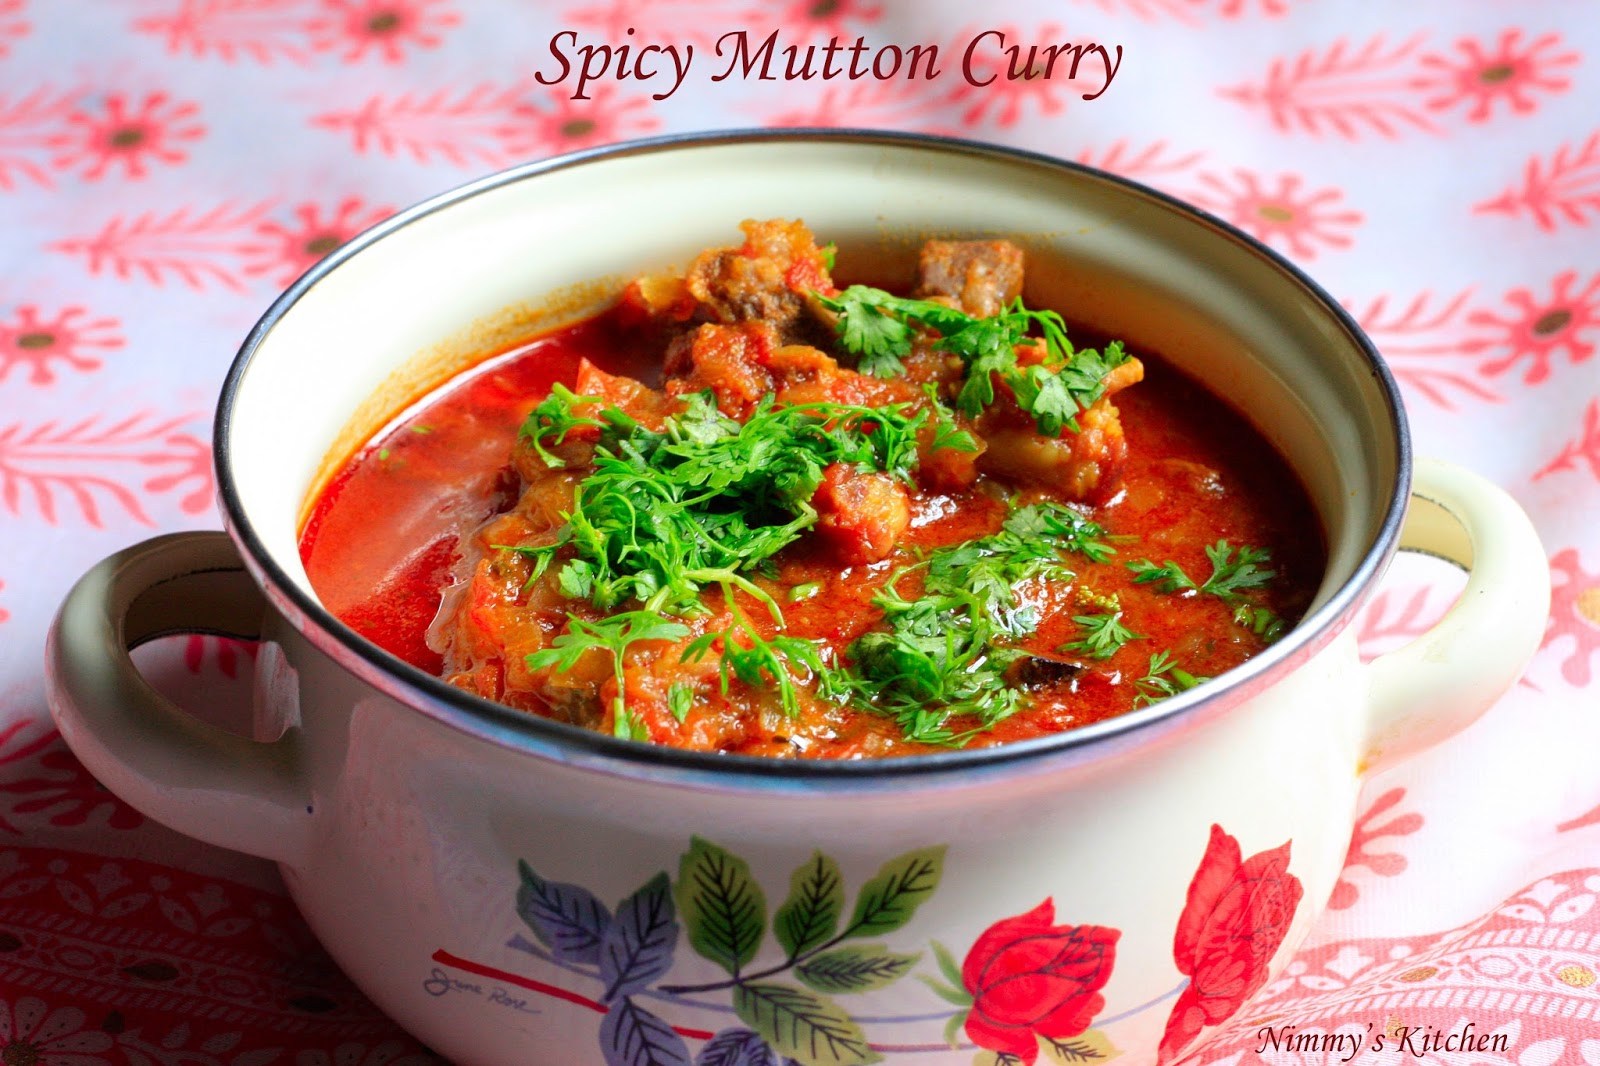 Nimmy's Kitchen: Spicy Mutton Curry